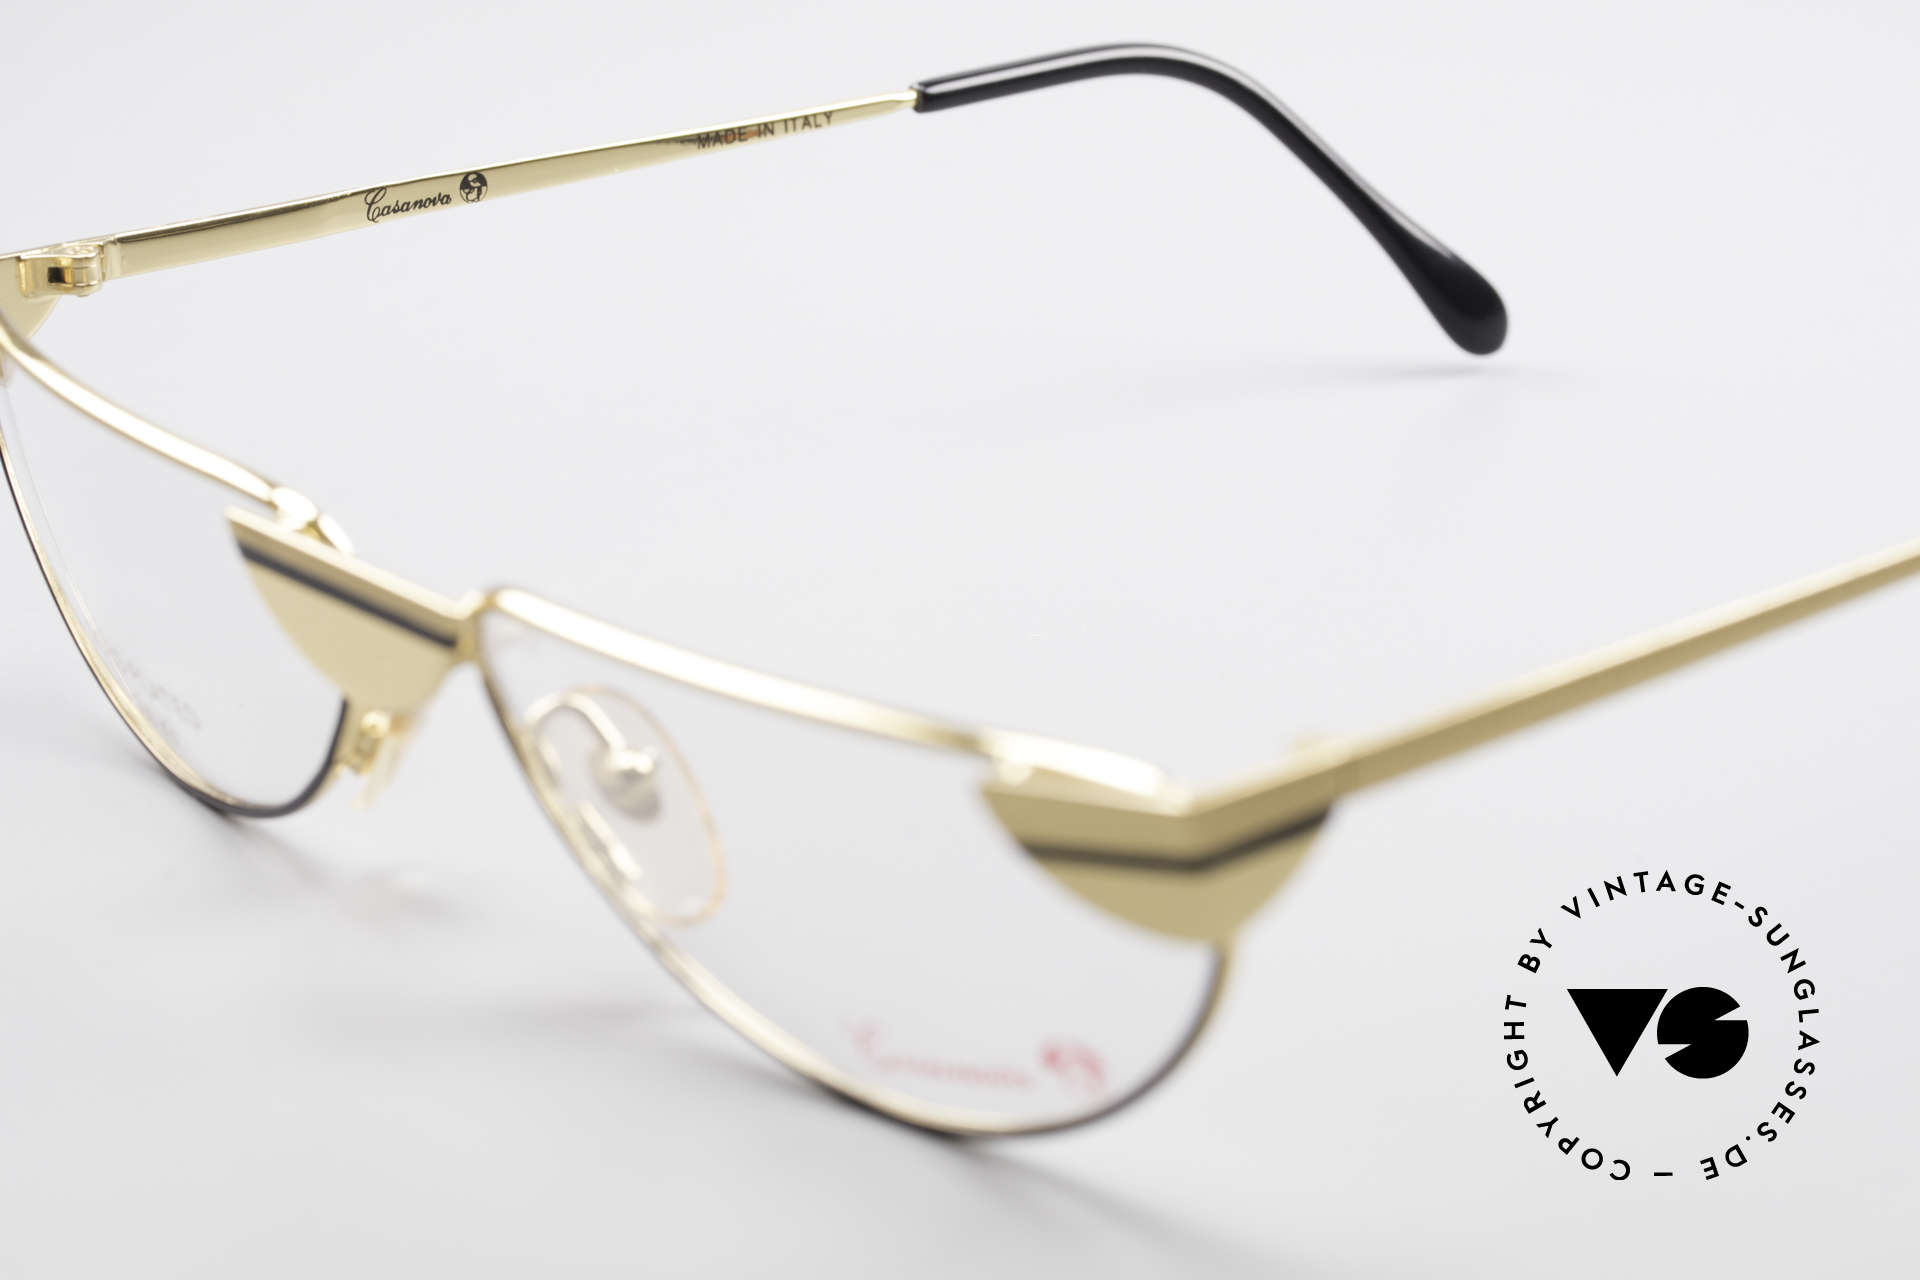 Casanova NM5 Gold Plated Reading Glasses, NOS - unworn (like all our artistic vintage eyeglasses), Made for Men and Women